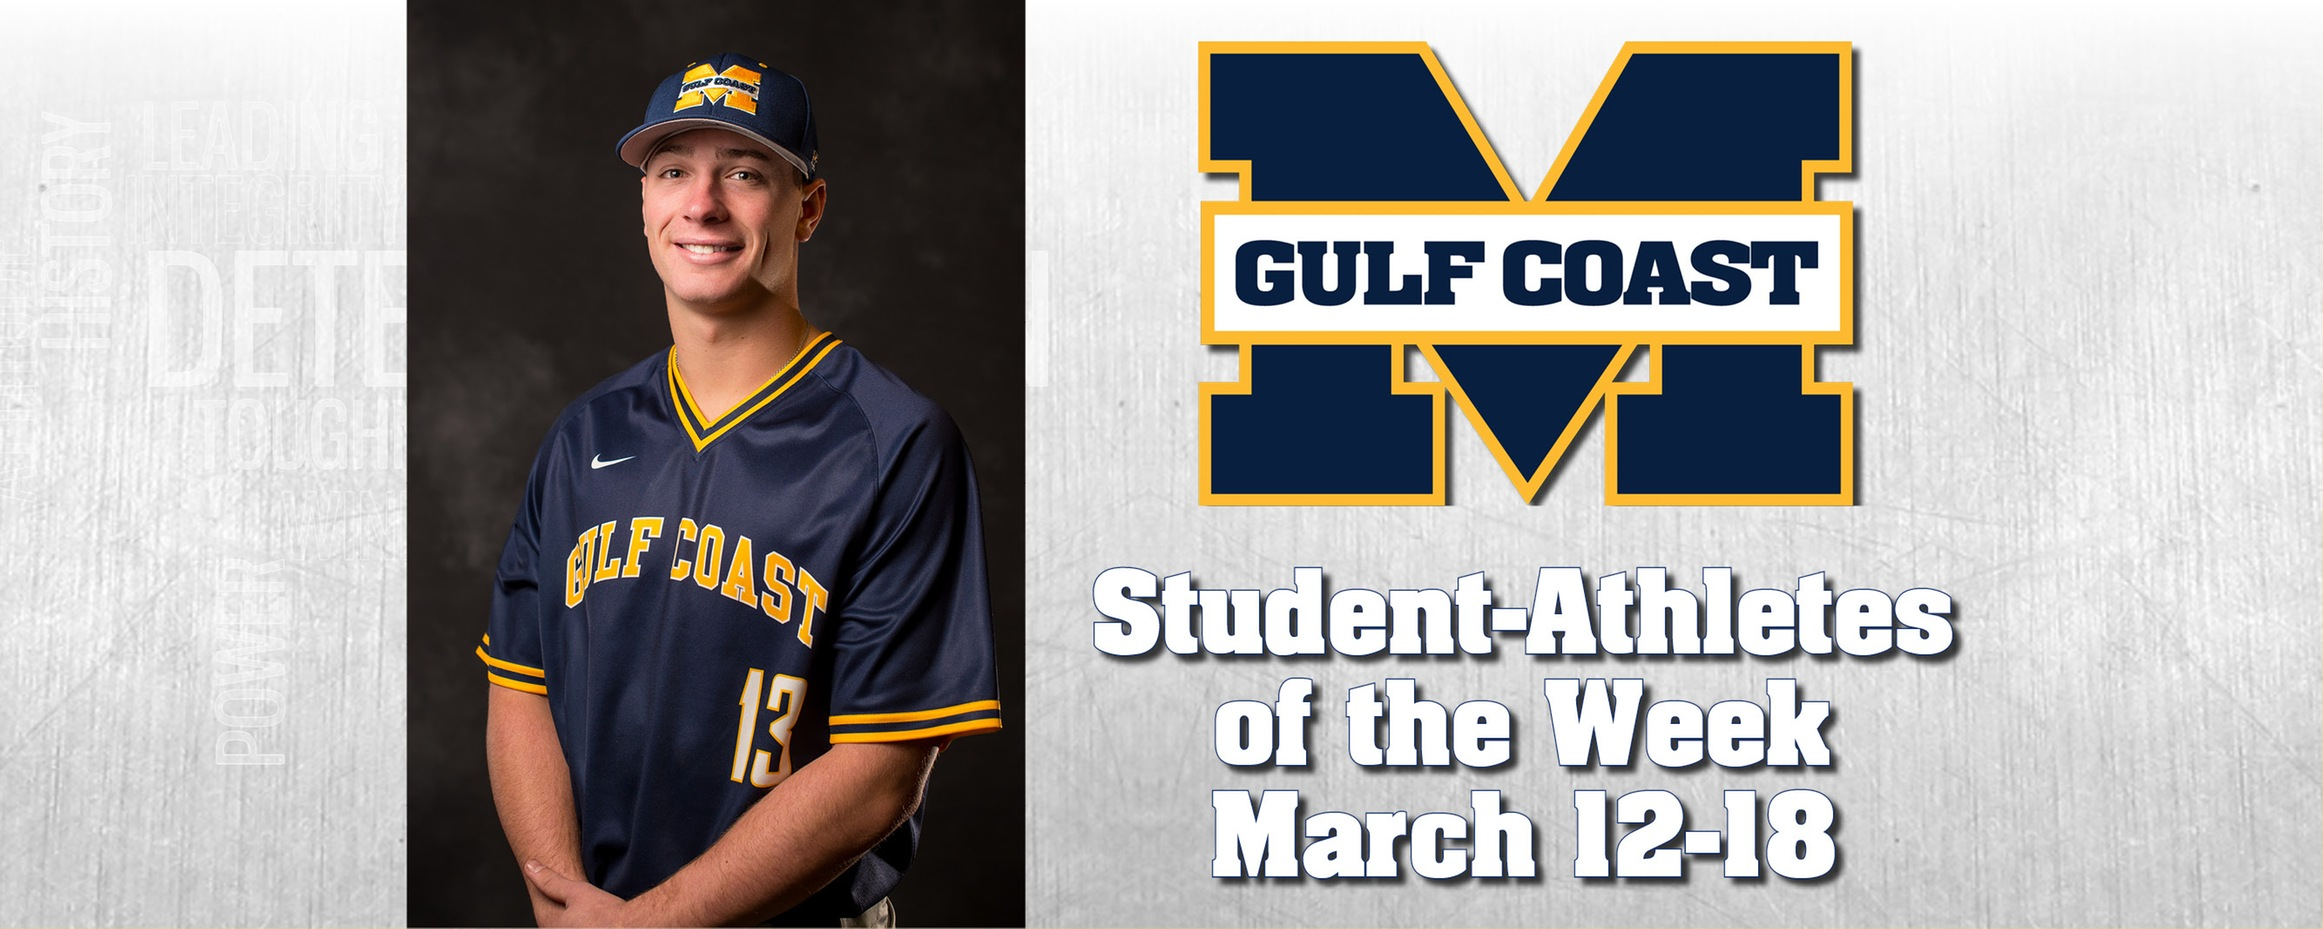 O'Shea named MGCCC Student-Athlete of the Week